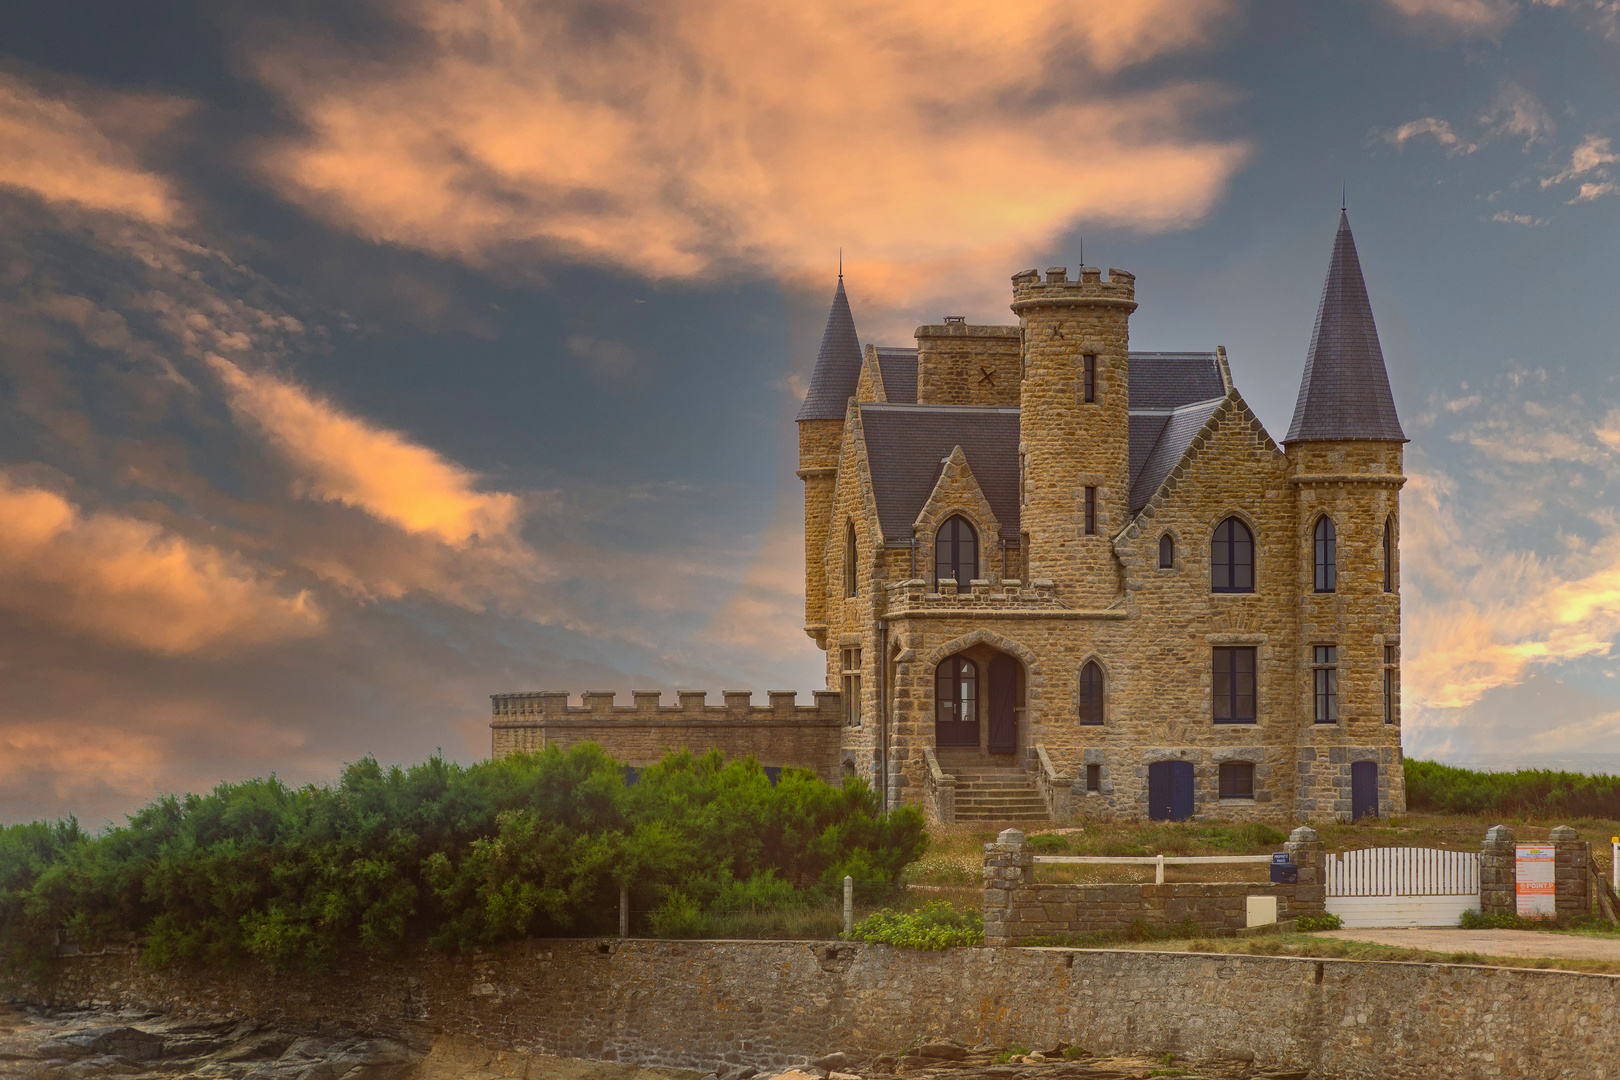 Le Chateau Turpault, ein Traumschloss?